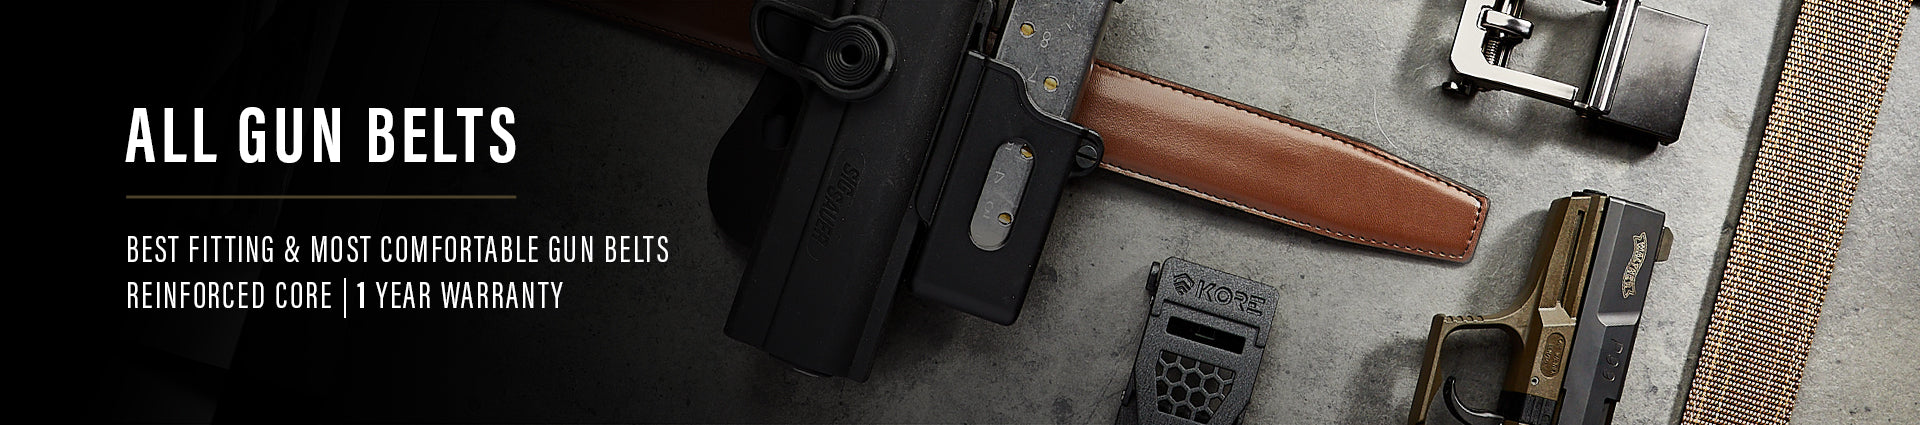 Gun Belts Shop Our Innovative Gun Belts Online Kore Essentials Kore Essentials I wasn't familiar with the company until i was put in contact with them about. gun belts shop our innovative gun